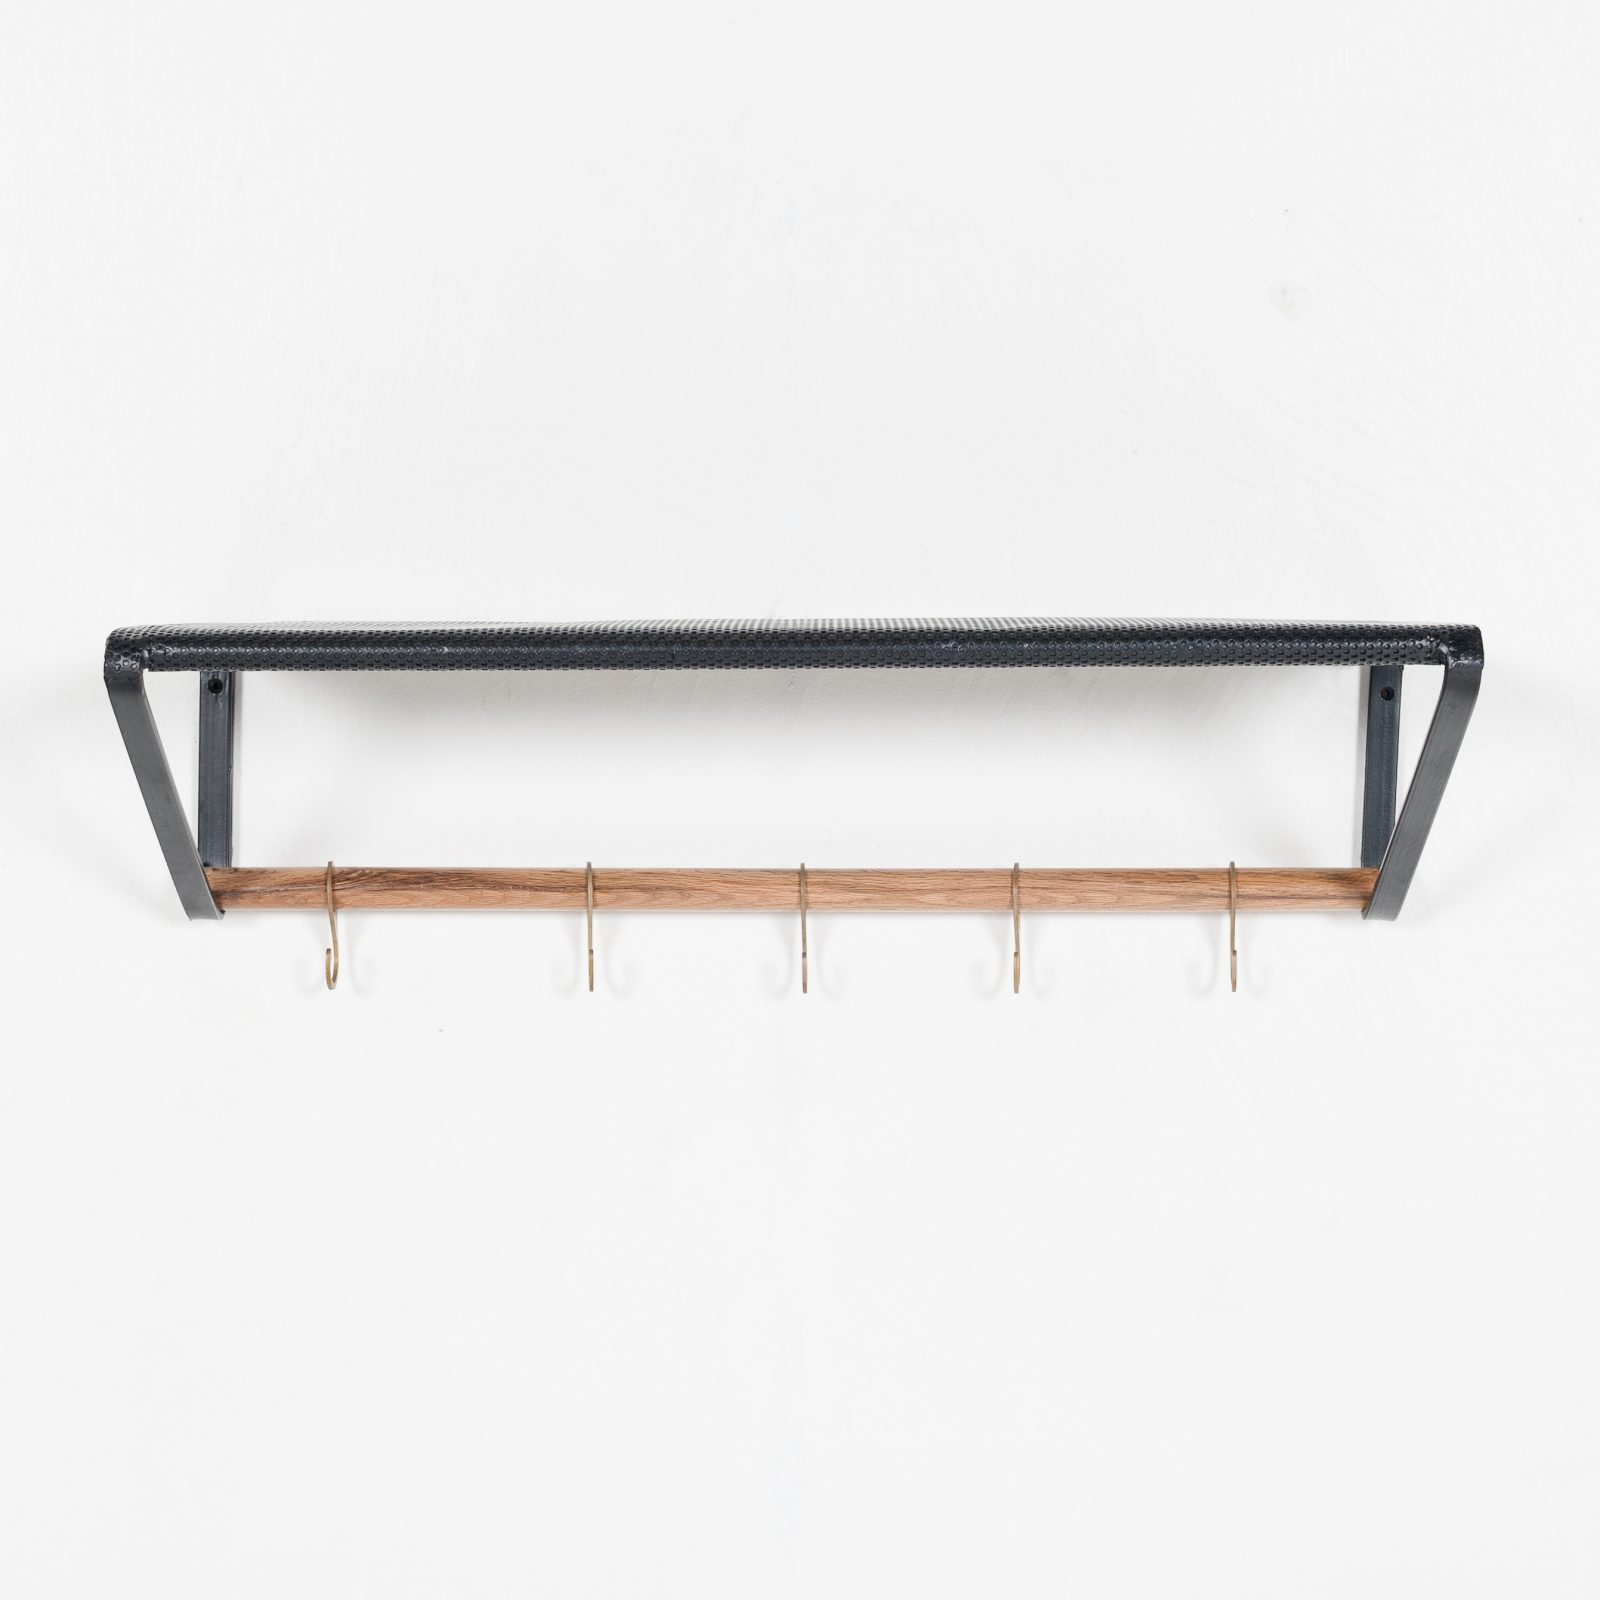 Wall Mounted Coat Rack In Black Perforated Metal With Brass Hooks 1950s The Netherlands Modern Times